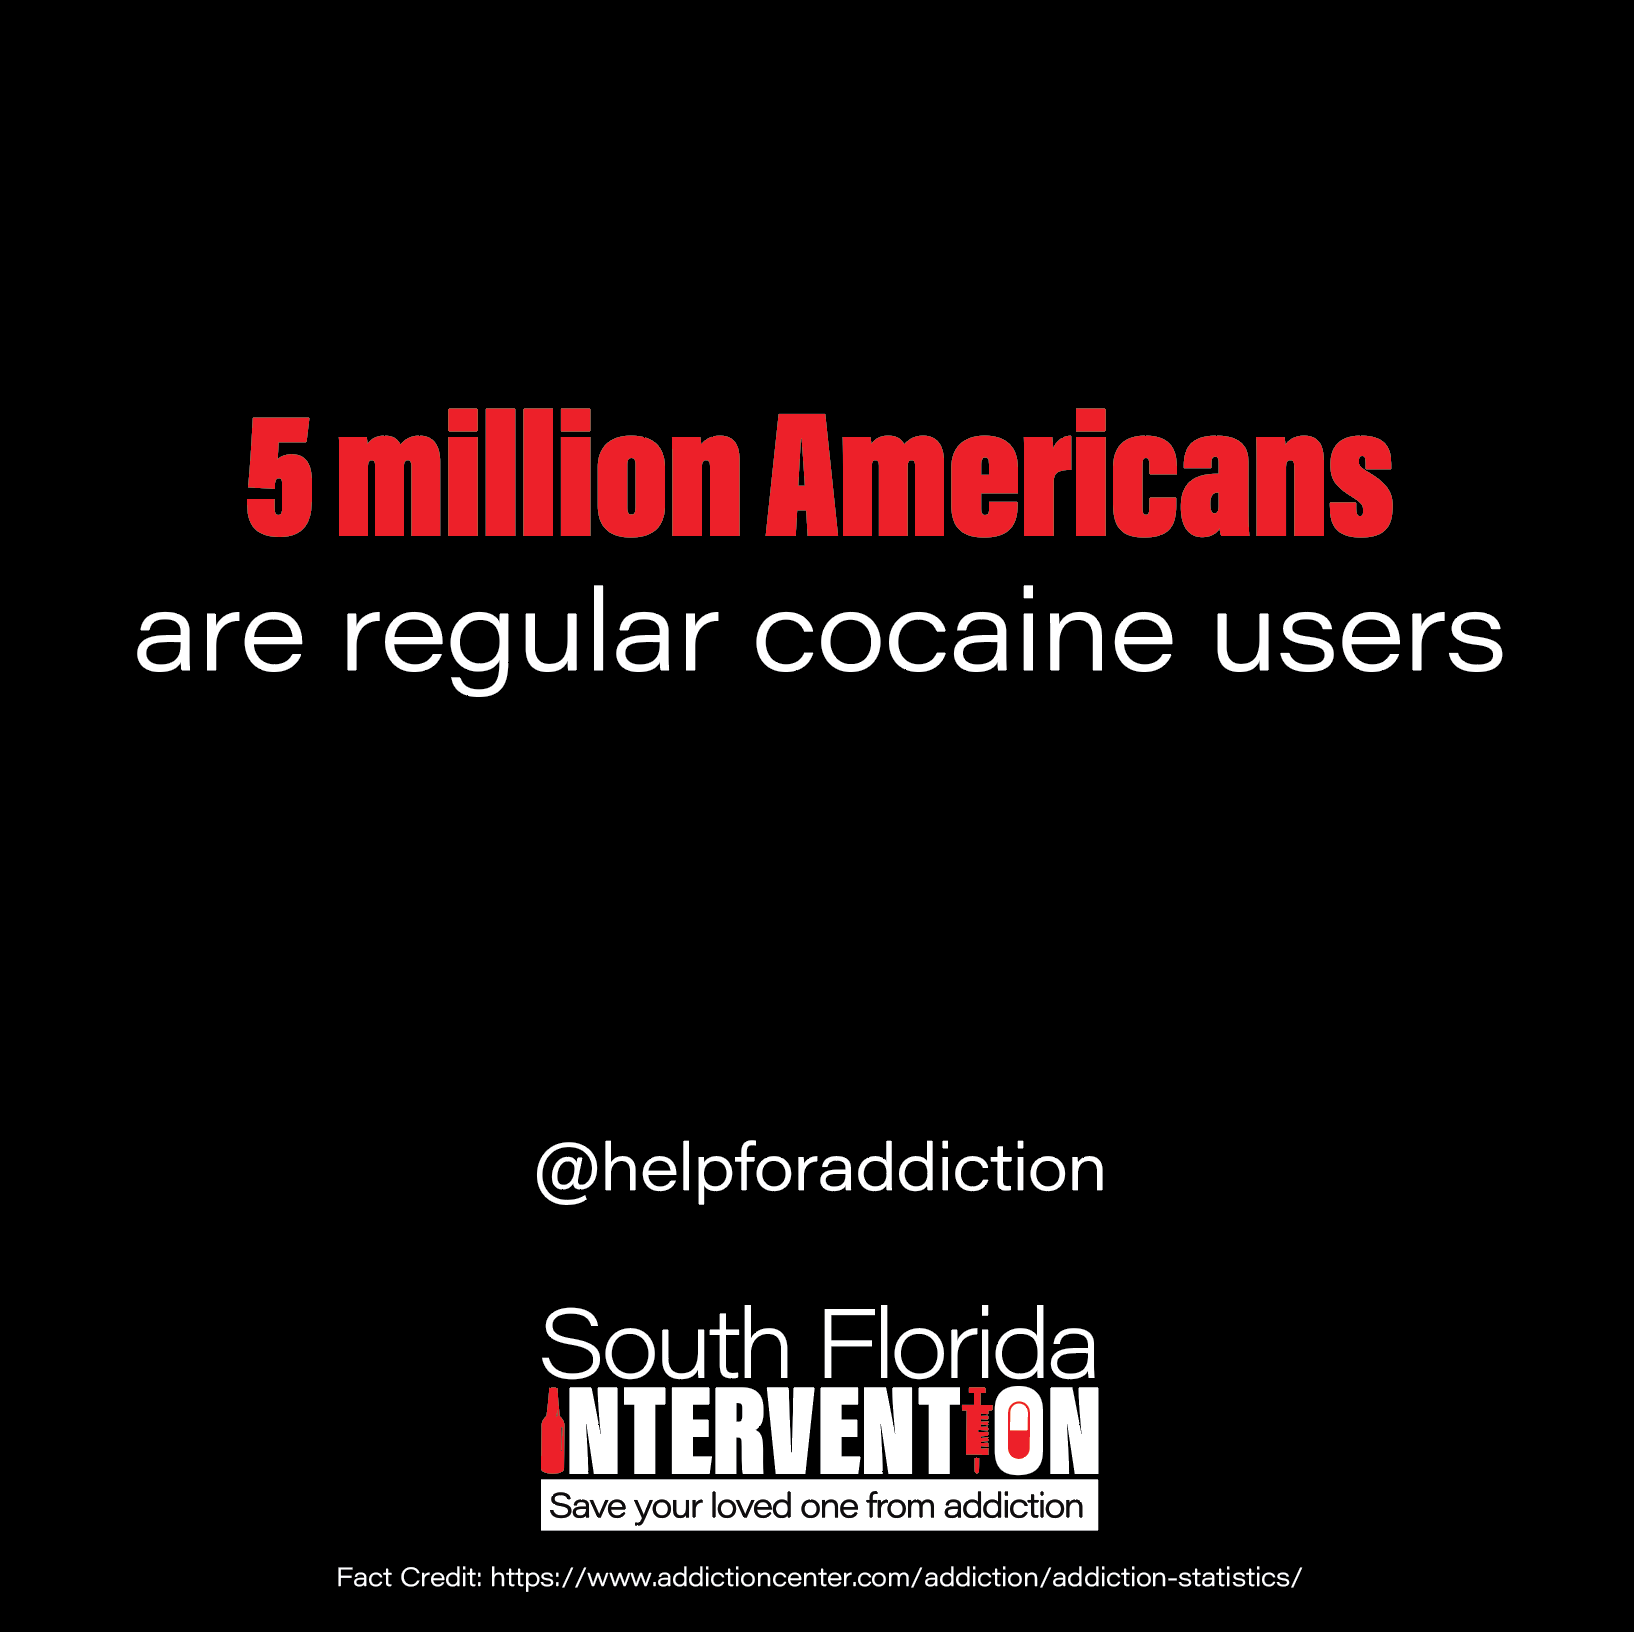 5 million Americas are regular cocaine users @helpforaddiction